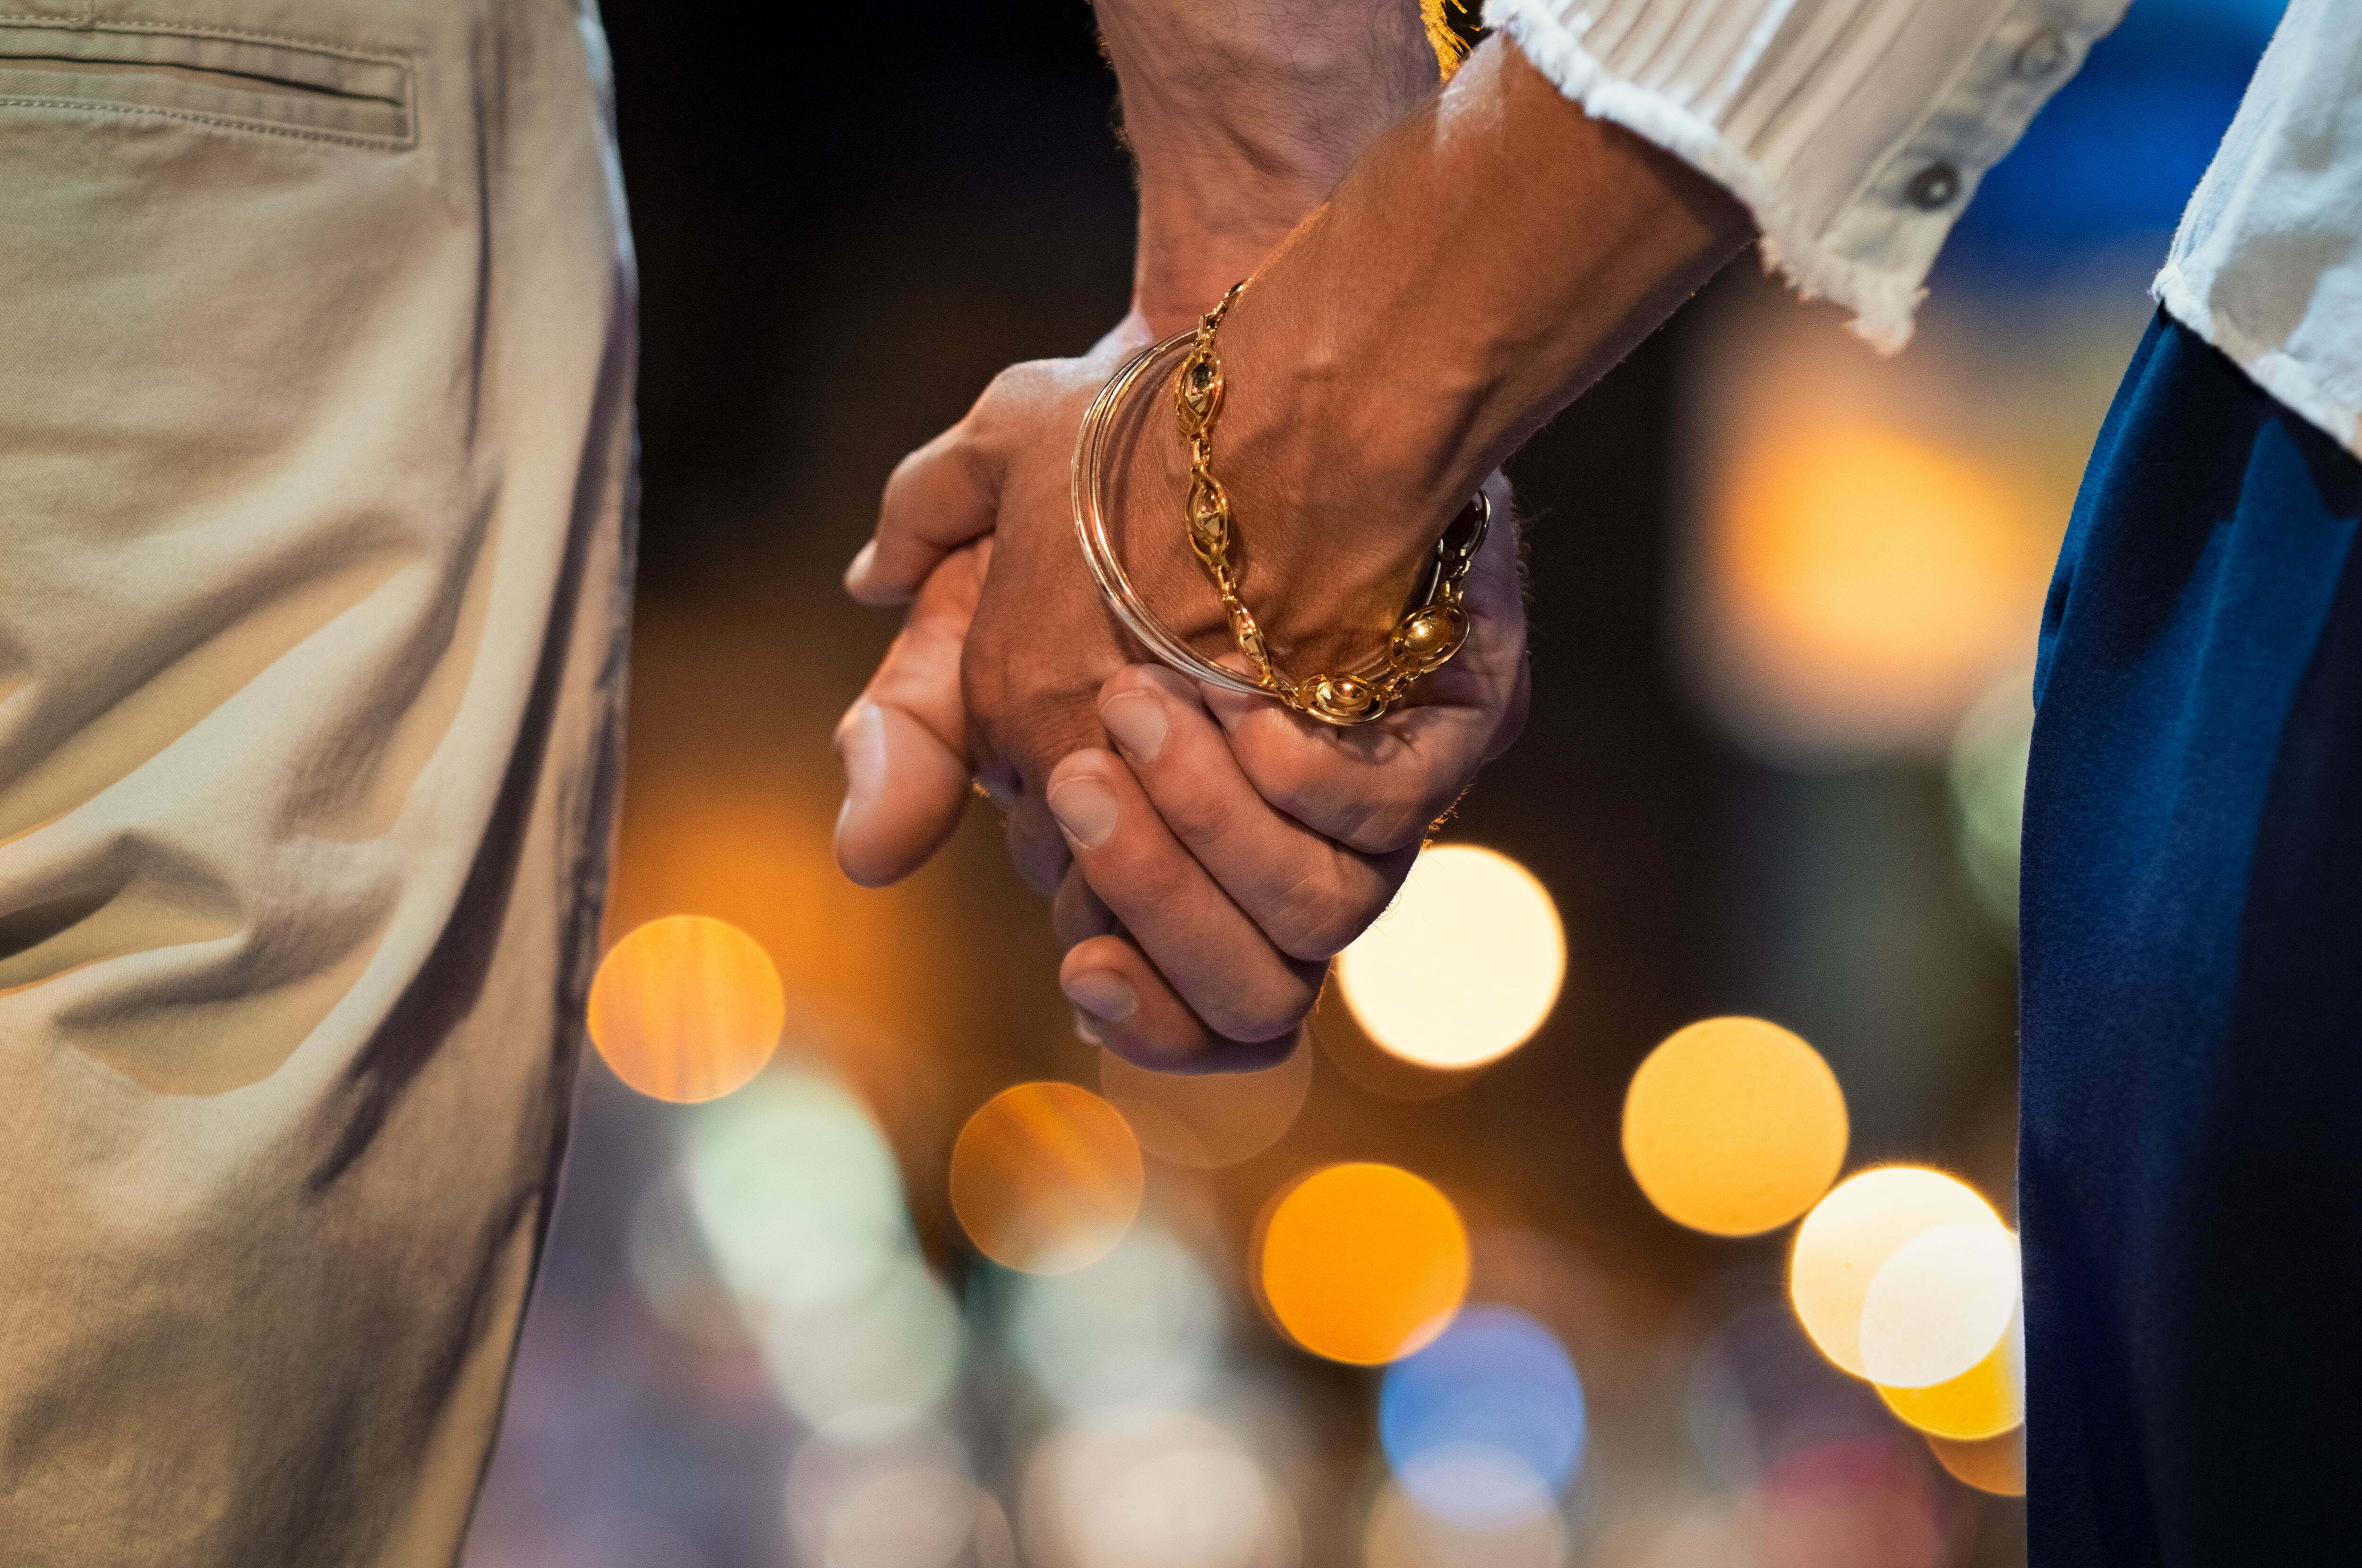 couple over age 55 holding hands on a date